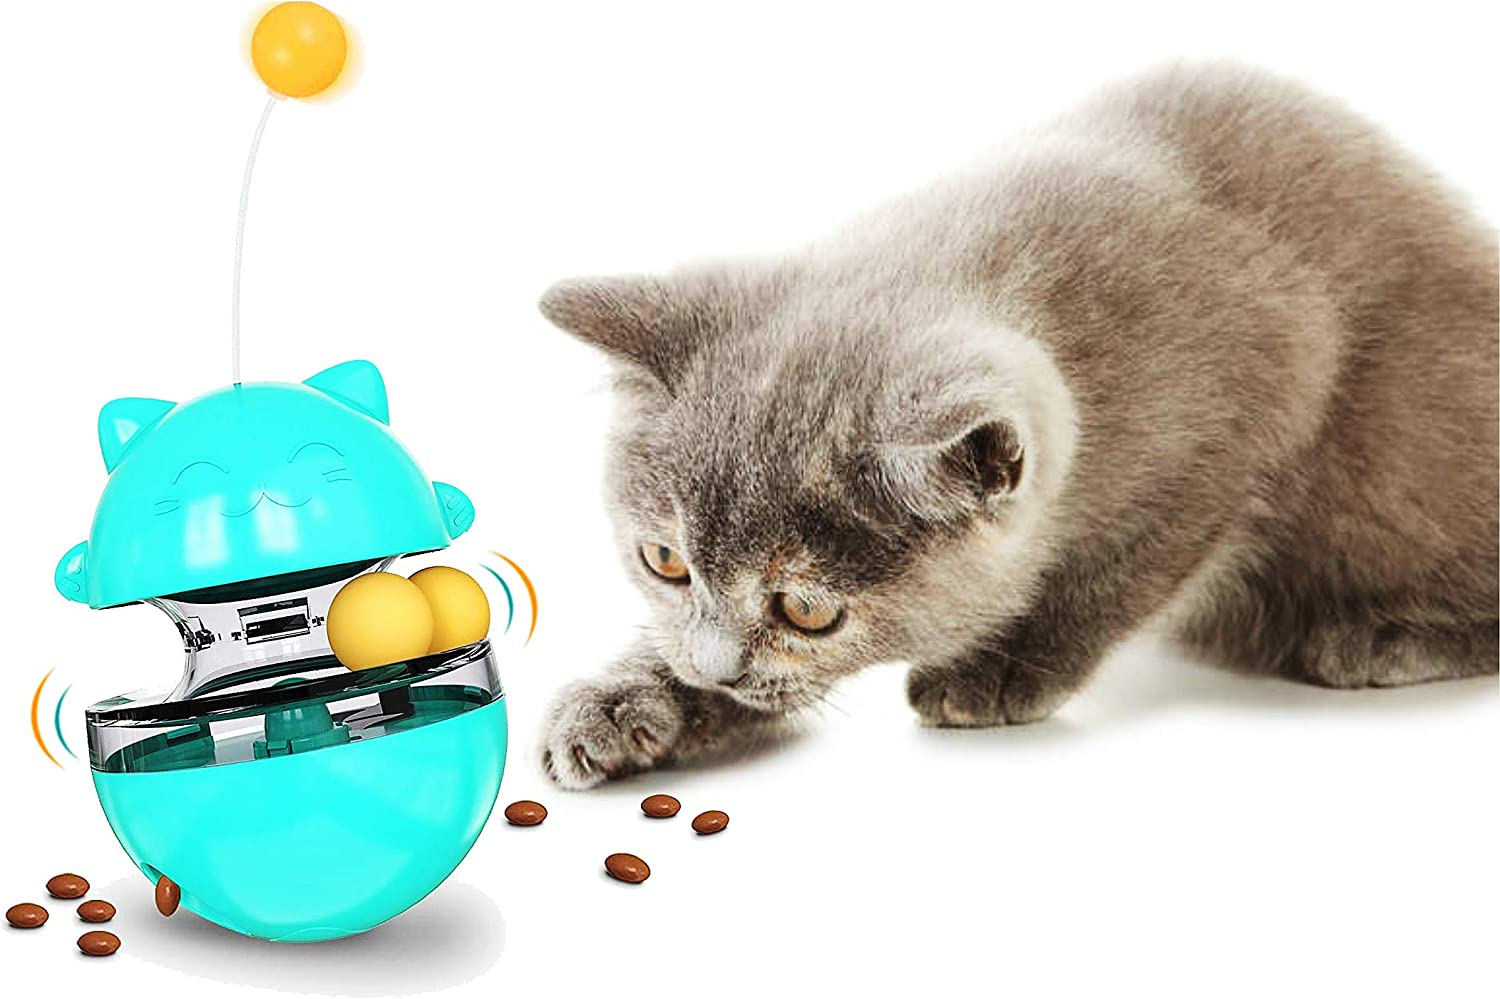 SUJAYU Cat Slow Feeder Ball, Tumbler Design Cat Food Dispenser Slow Eating Interactive Cat Toy Ball Detachable Wand Pet Puzzle Feeder